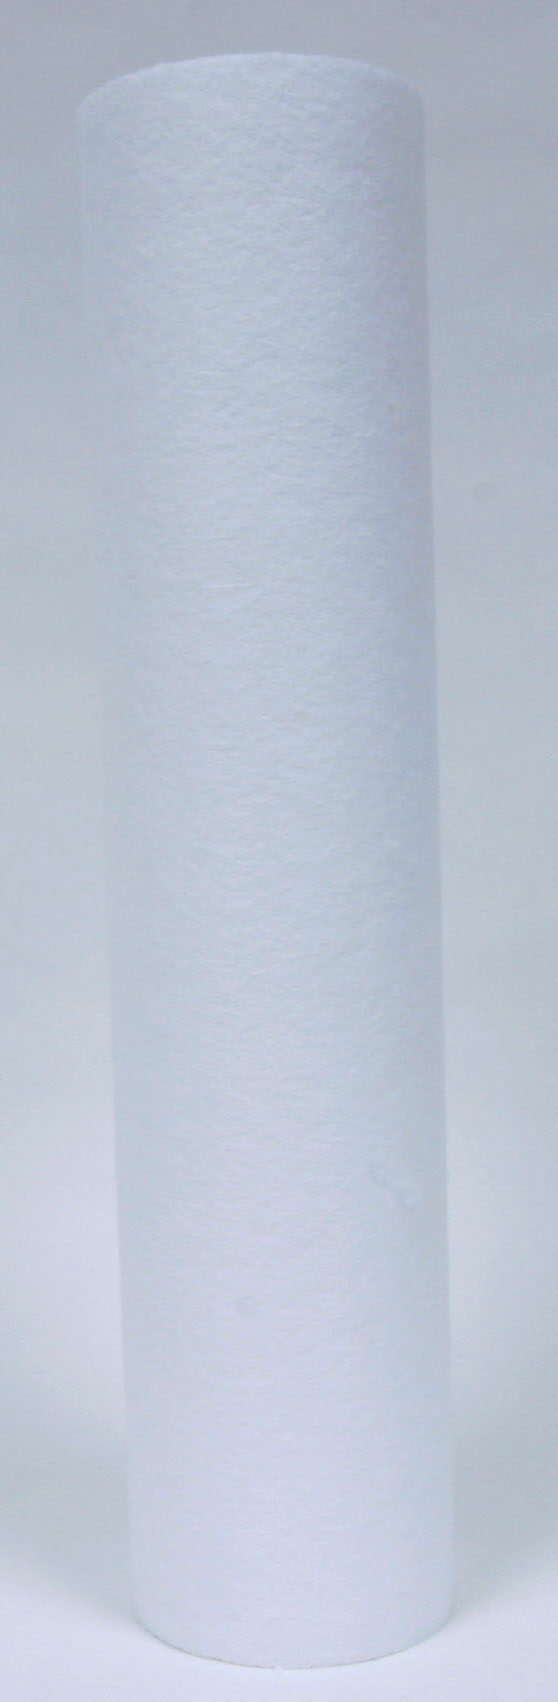 Melt Blown Poly Filter Cartridges